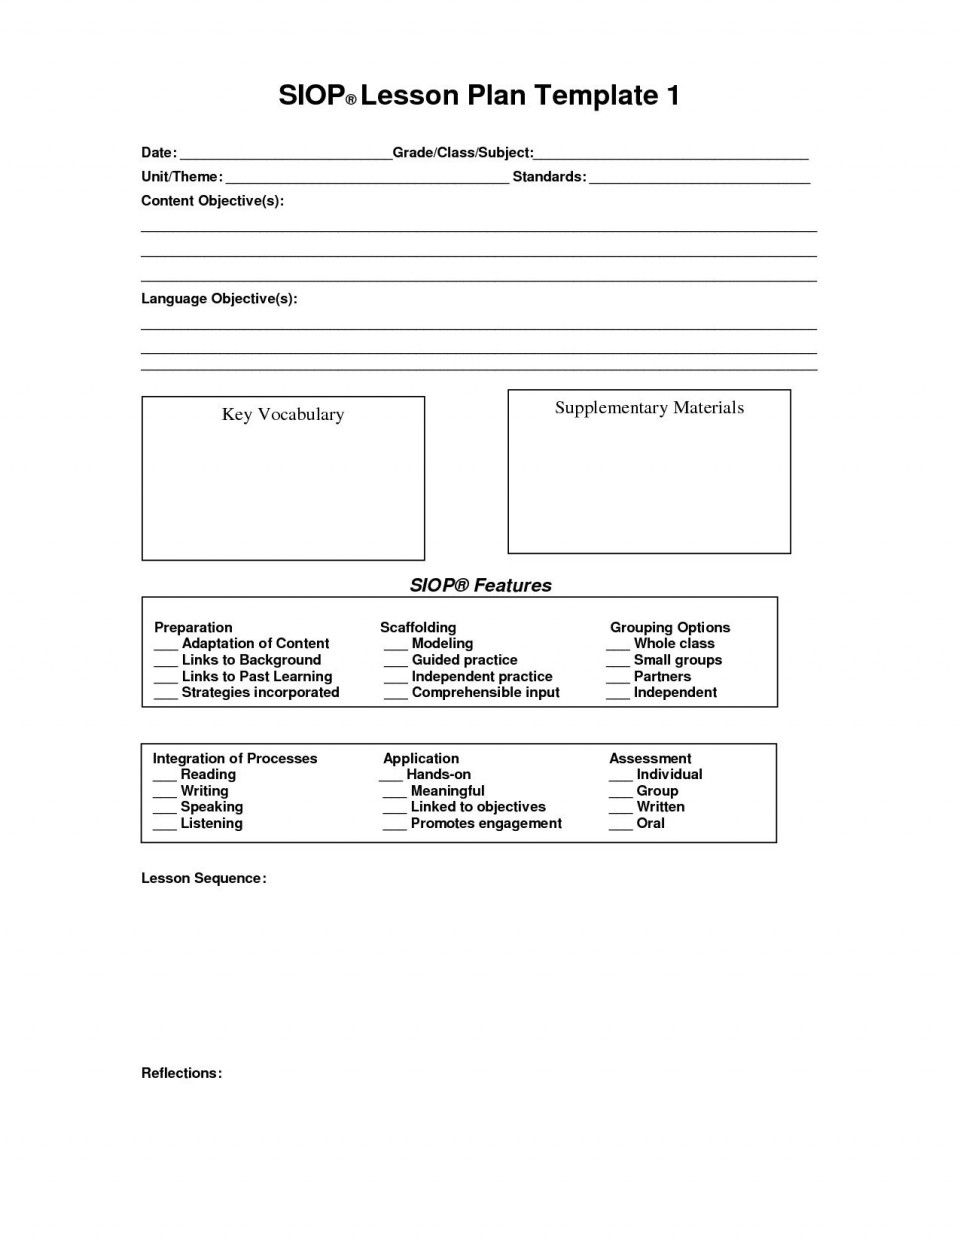 000 Staggering Siop Lesson Plan Template 1 Image  Example First Grade Word Document 1st960